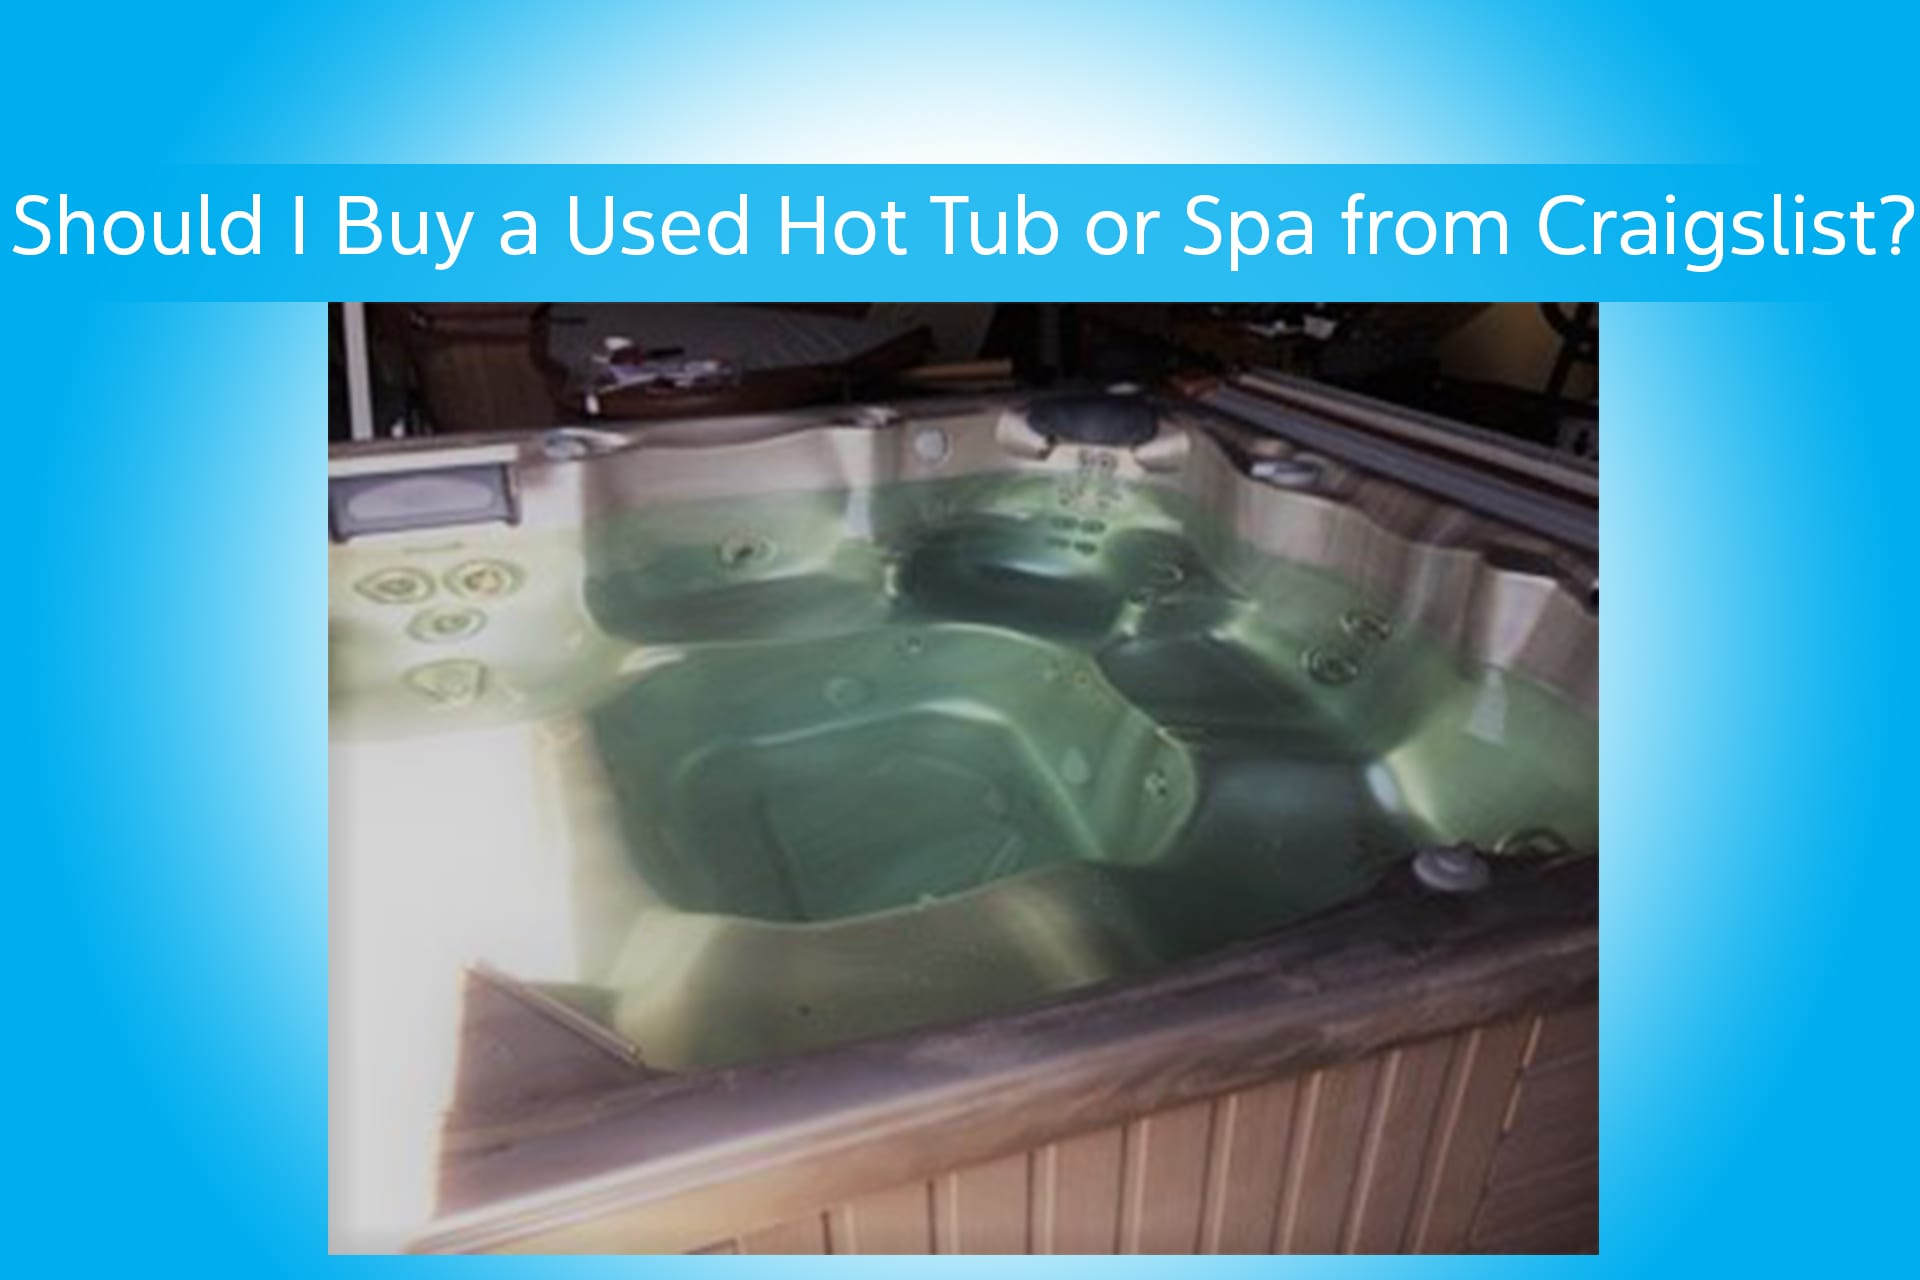 Should I buy a used hot tub or spa on Craigslist? - Hot Tubs